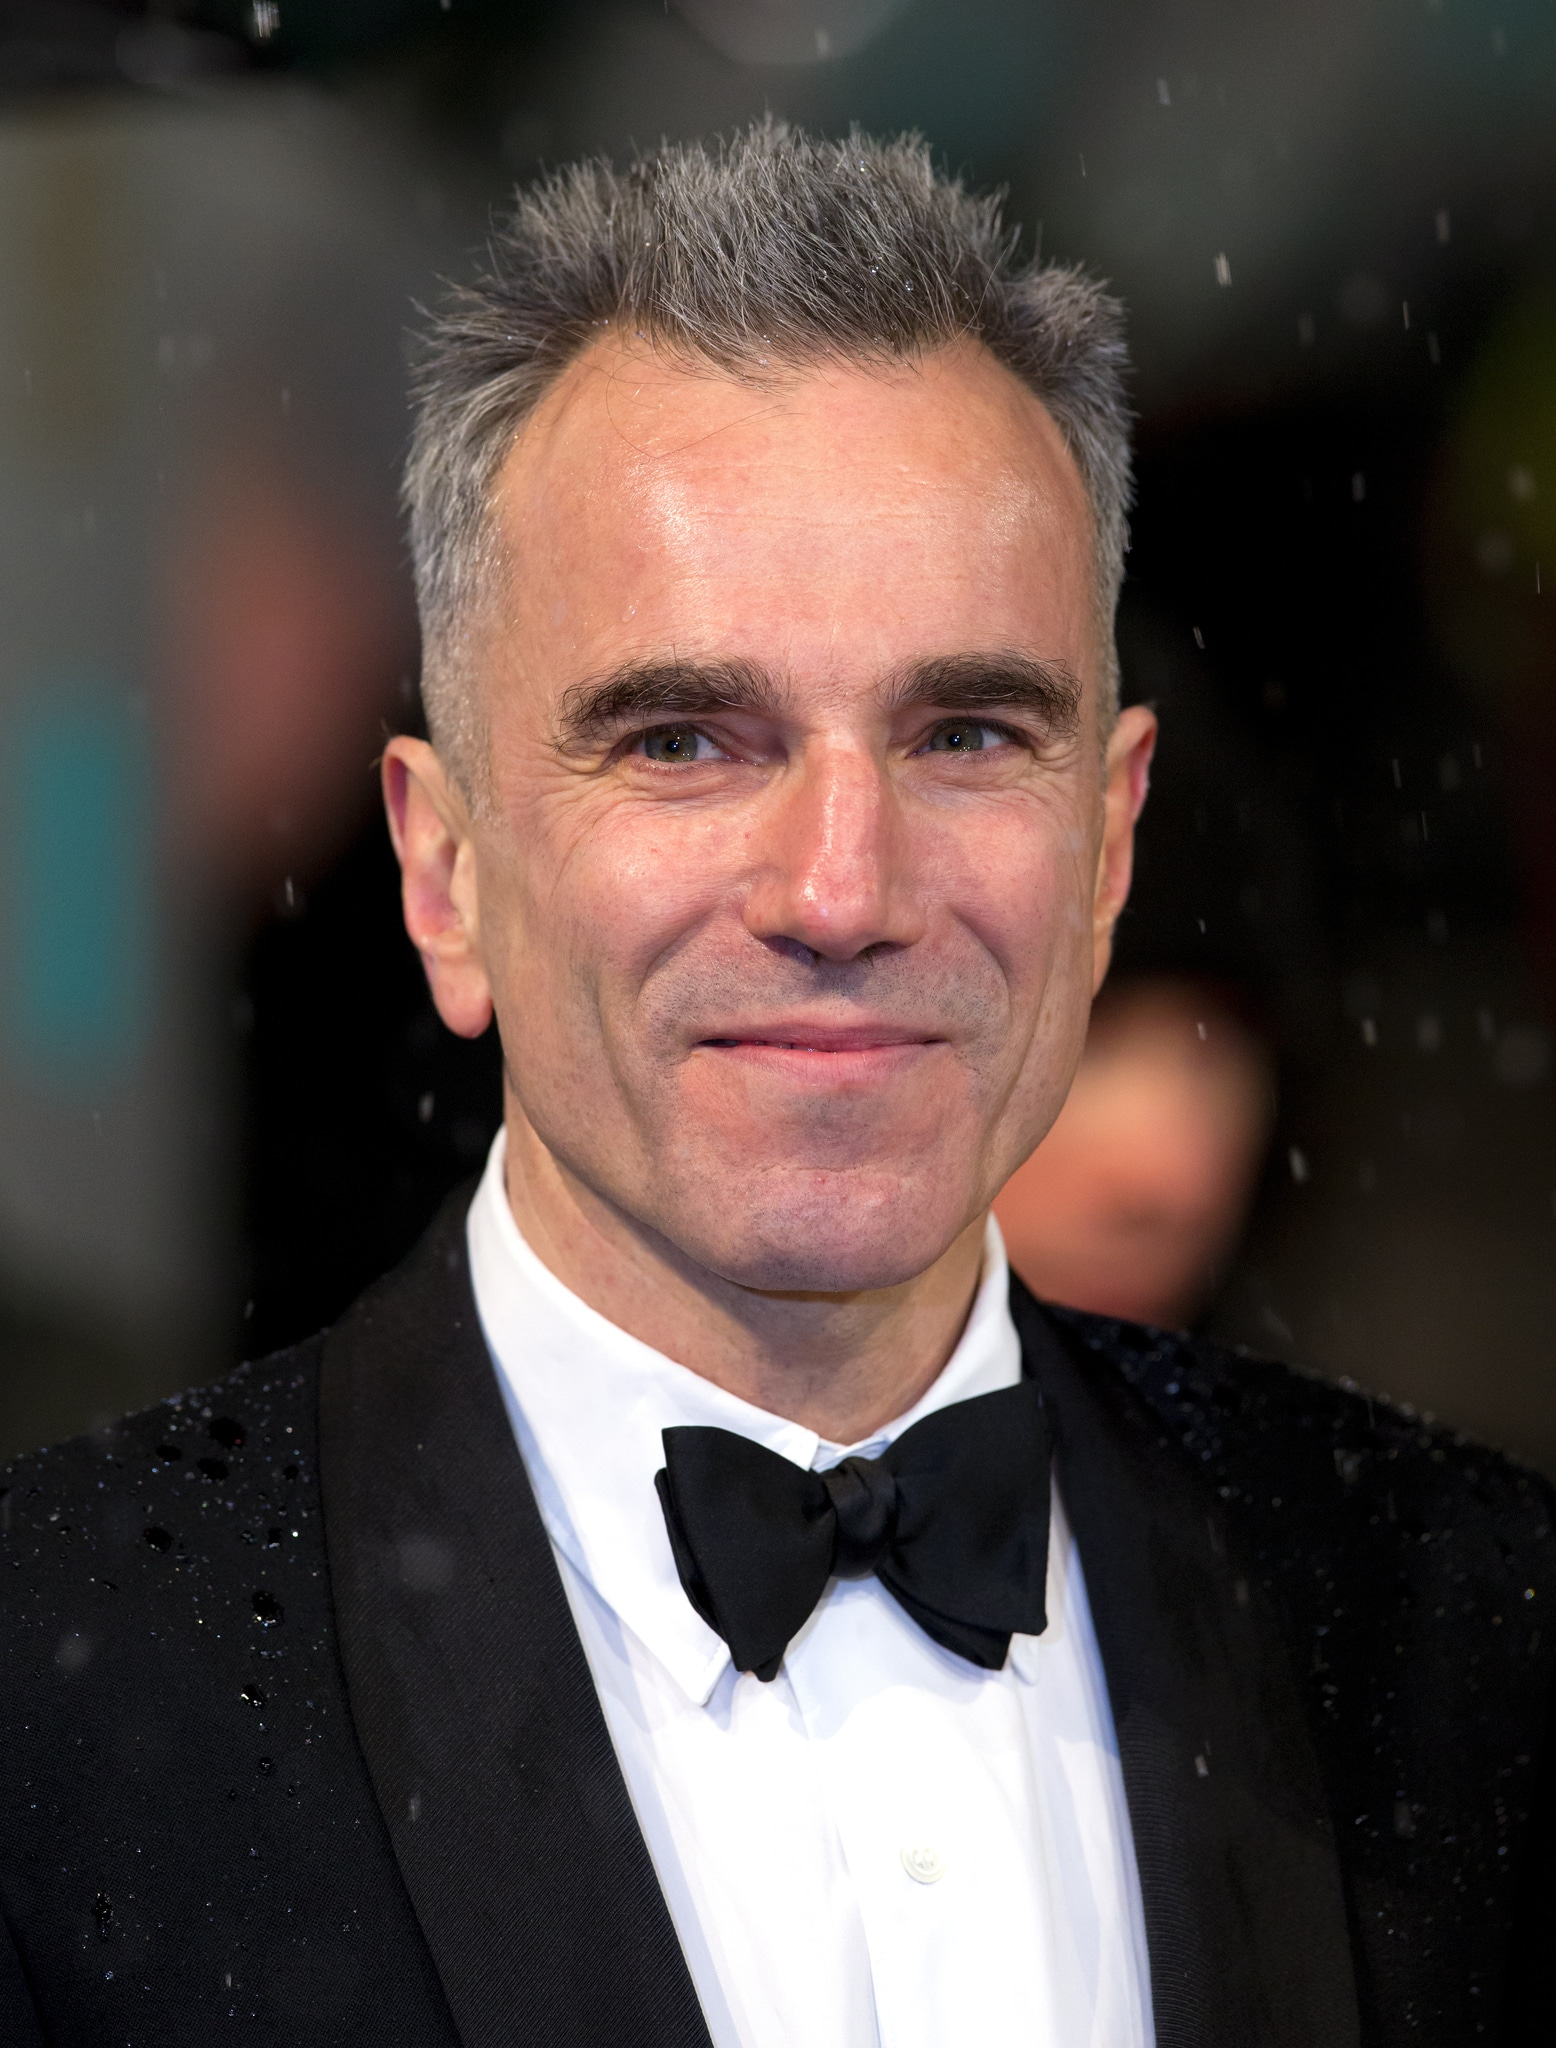 Daniel Day-Lewis British, Irish Actor